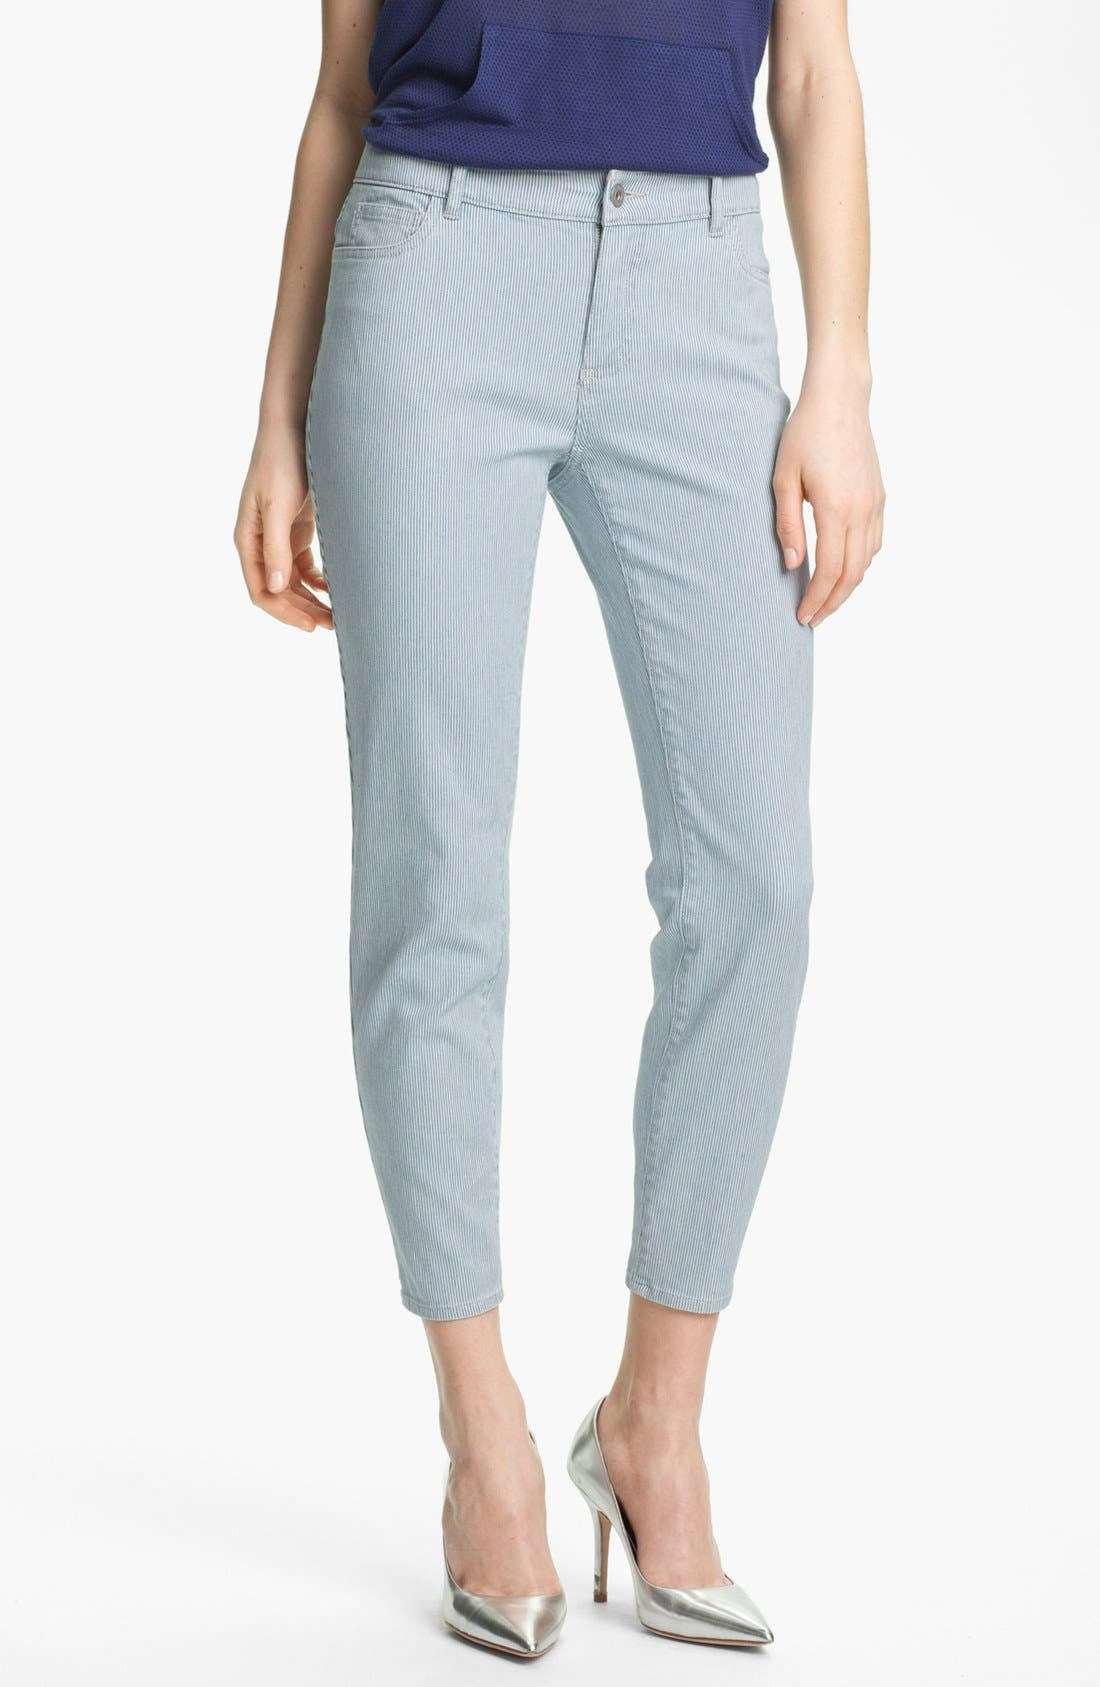 Main Image - Two by Vince Camuto Pinstripe Zip Ankle Jeans